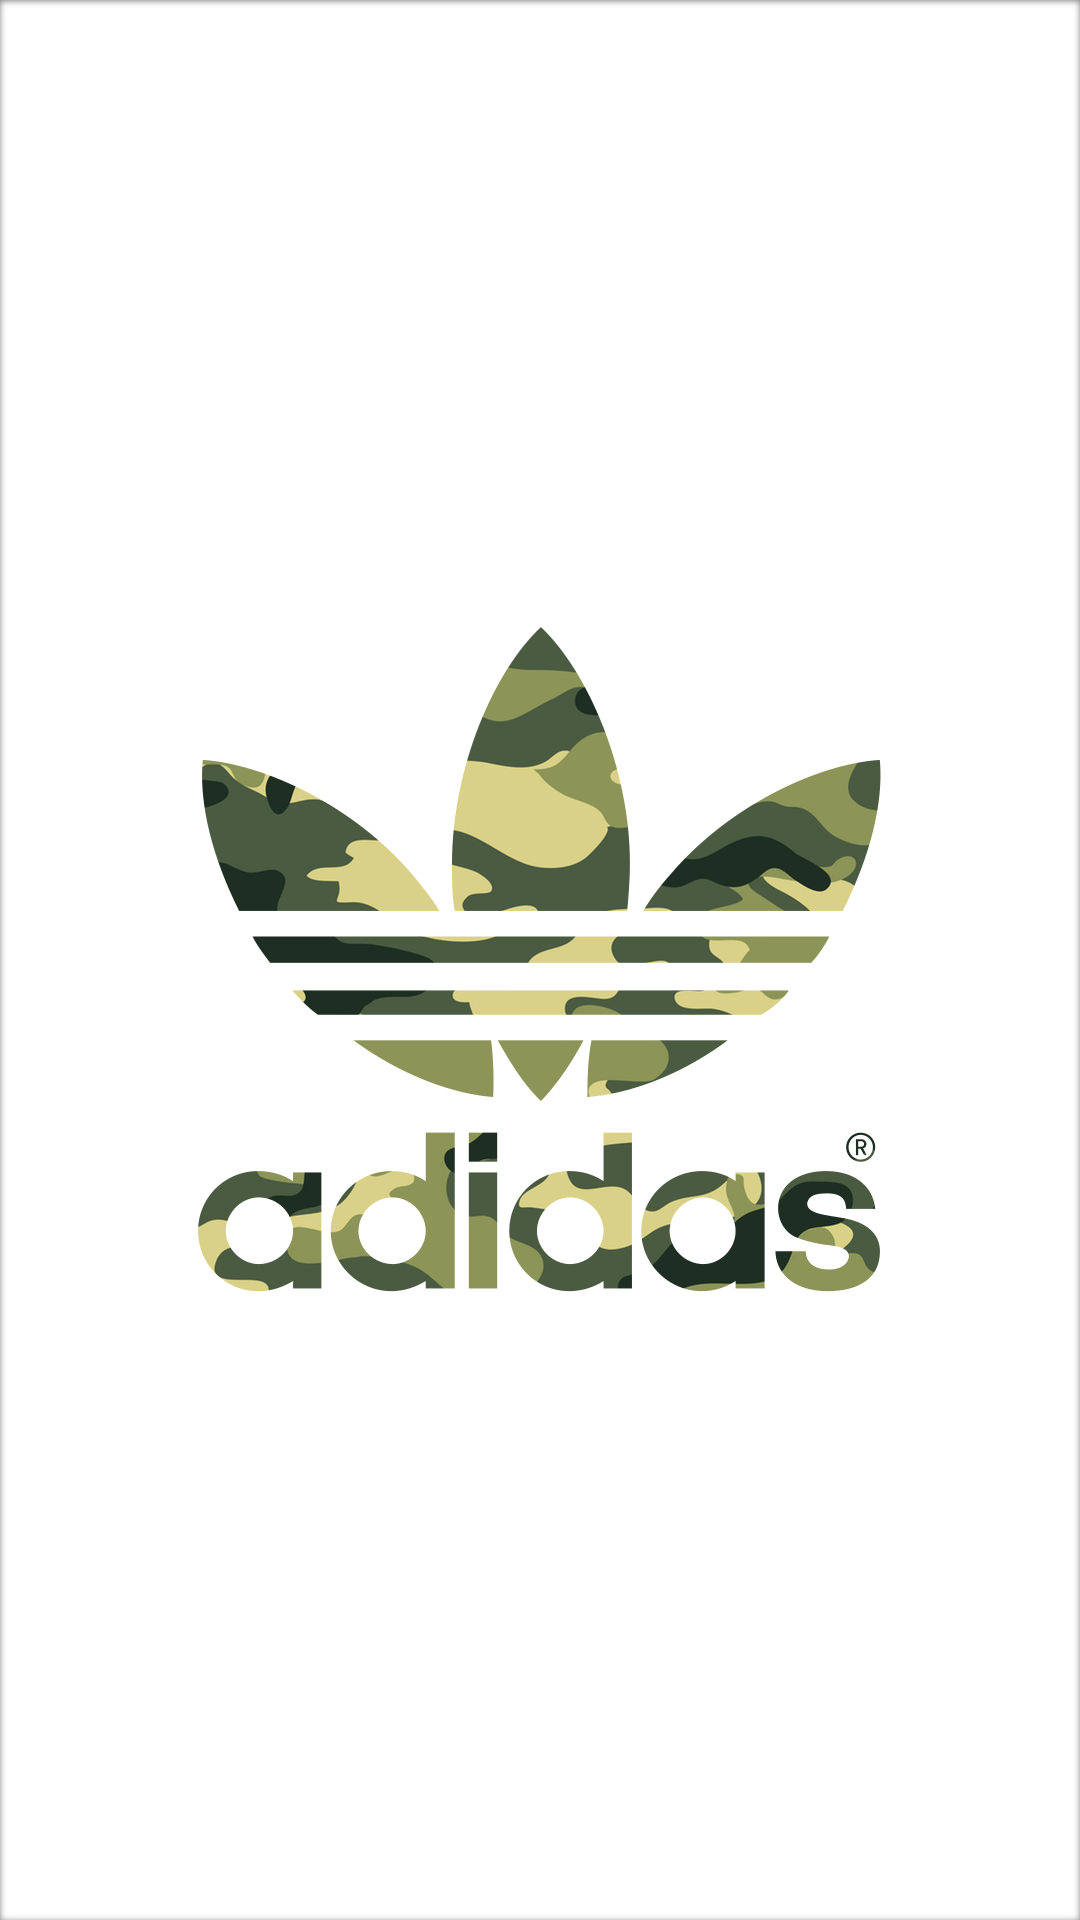 adidas15 - 25 adidas HQ Smartphone Wallpaper Collection